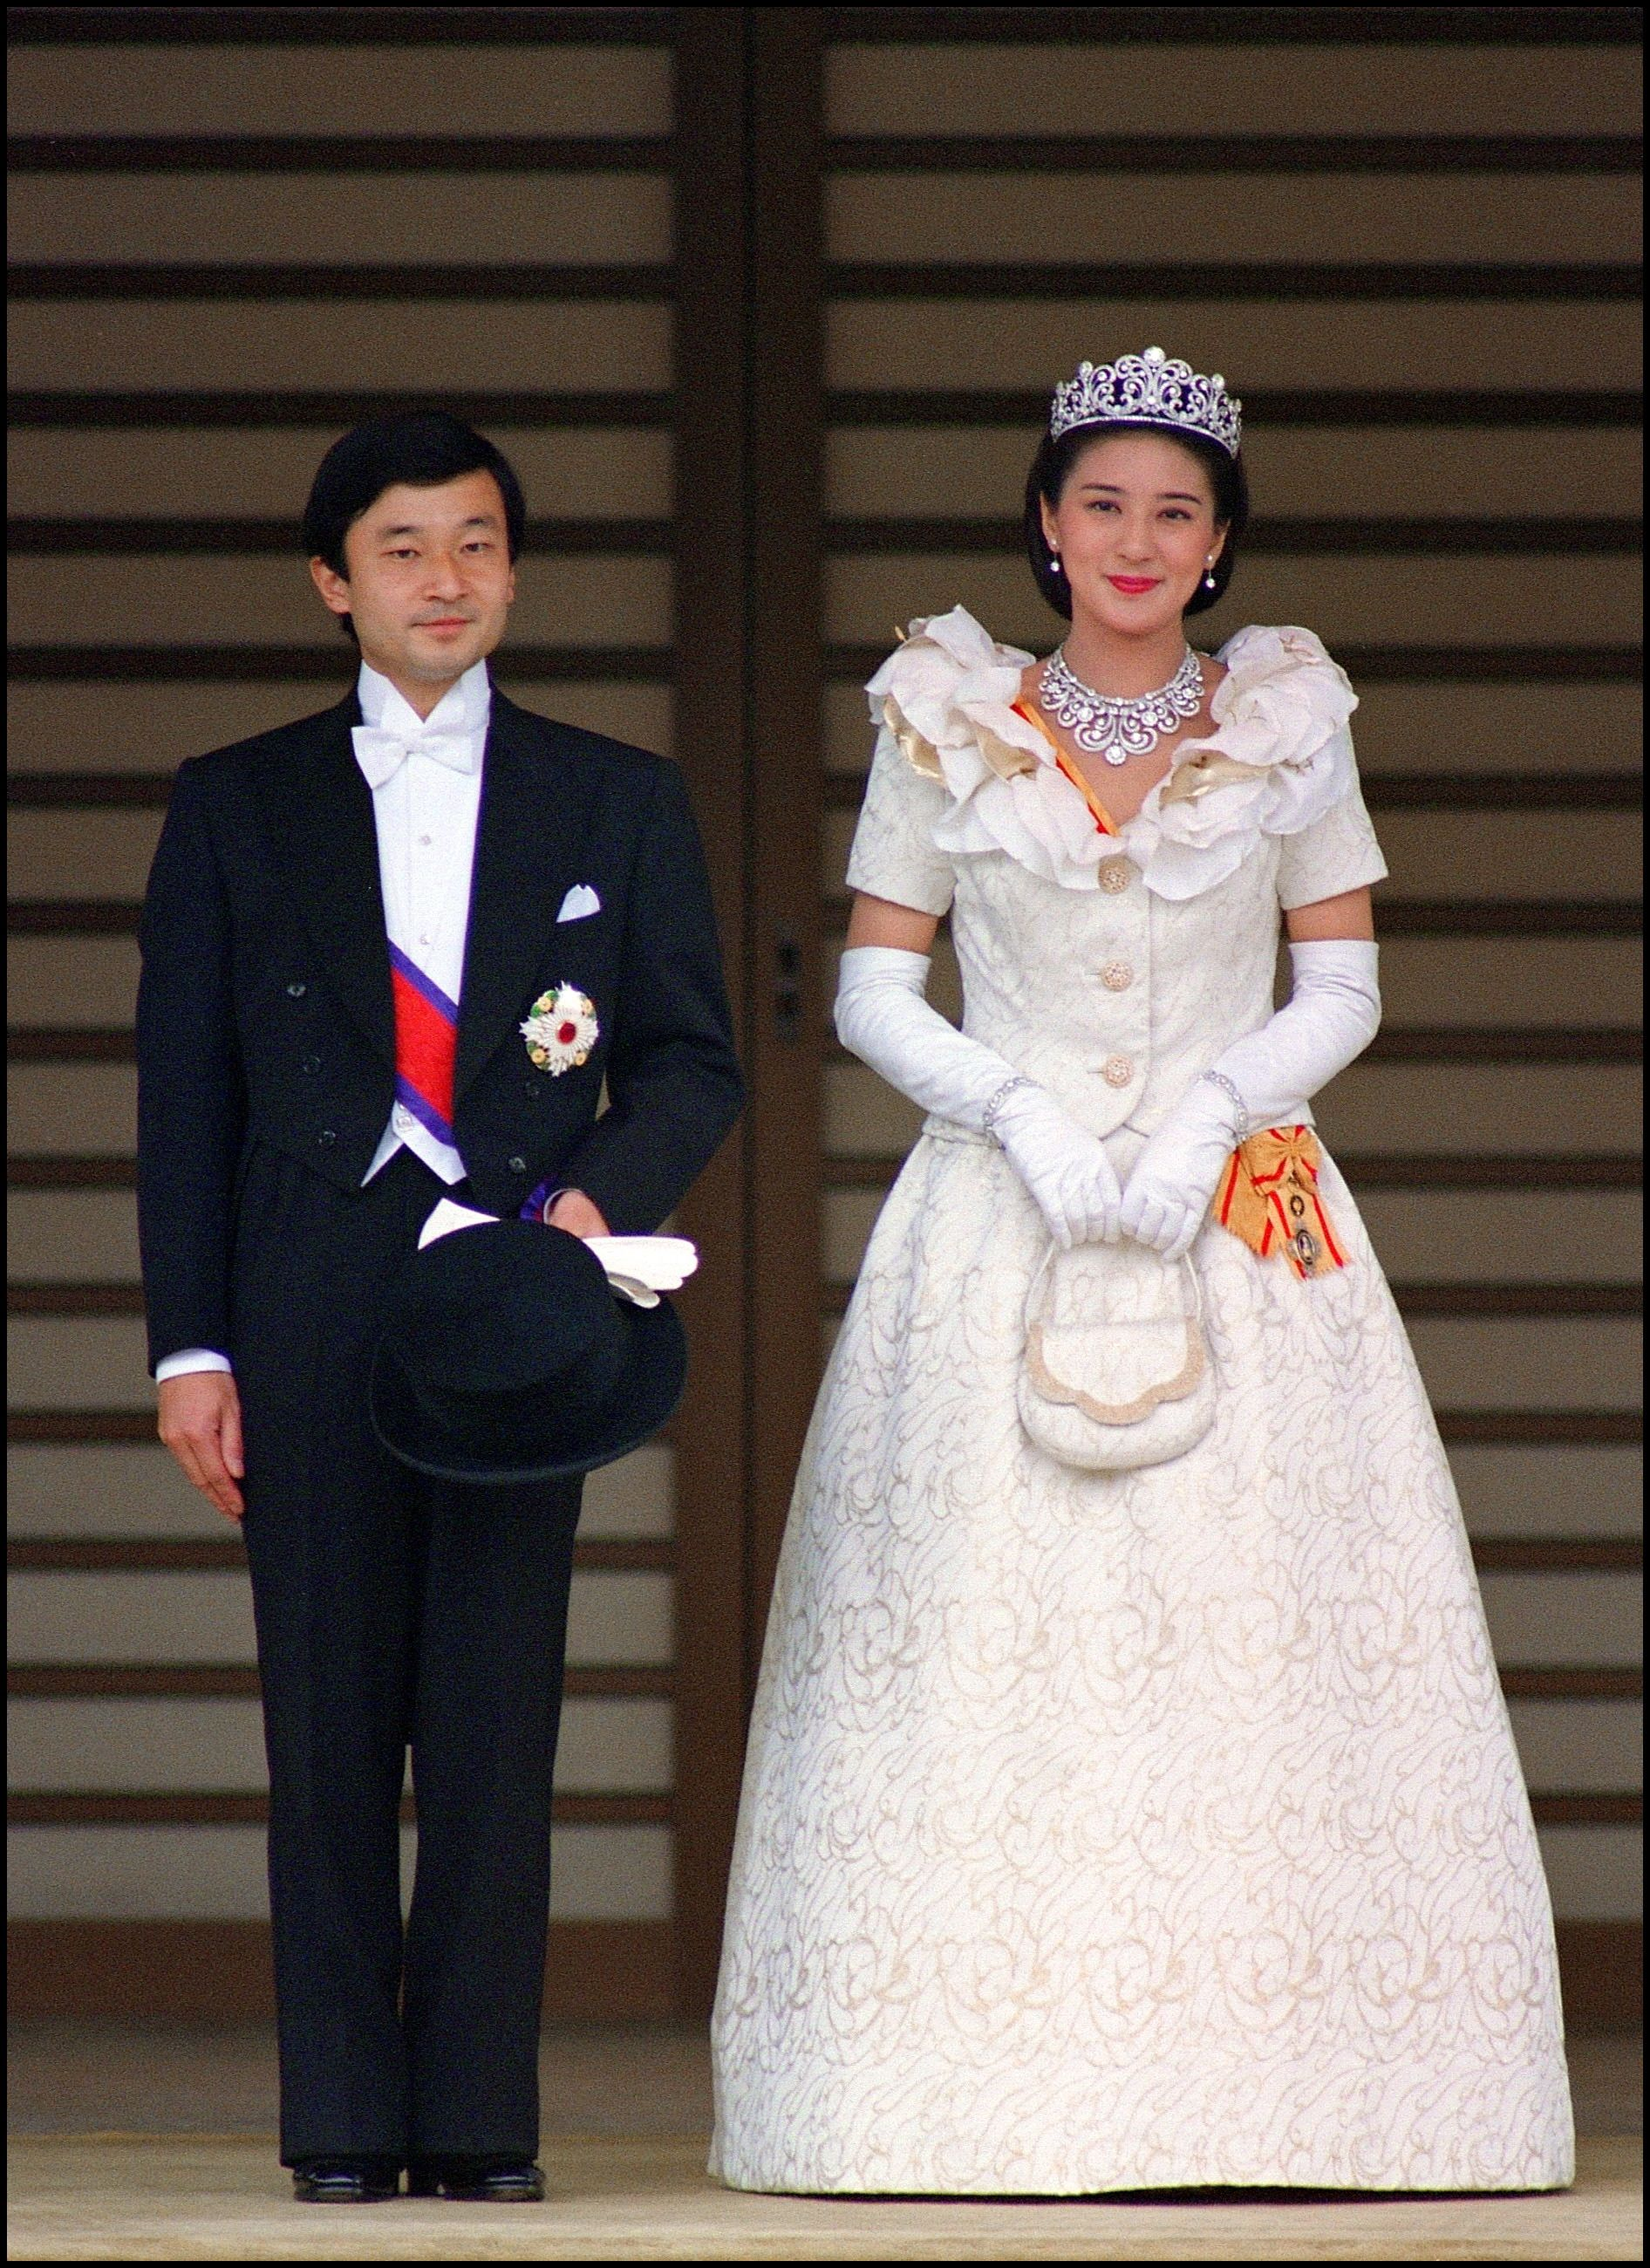 31 Iconic Royal Wedding Dresses - Best Royal Wedding Gowns of All Time